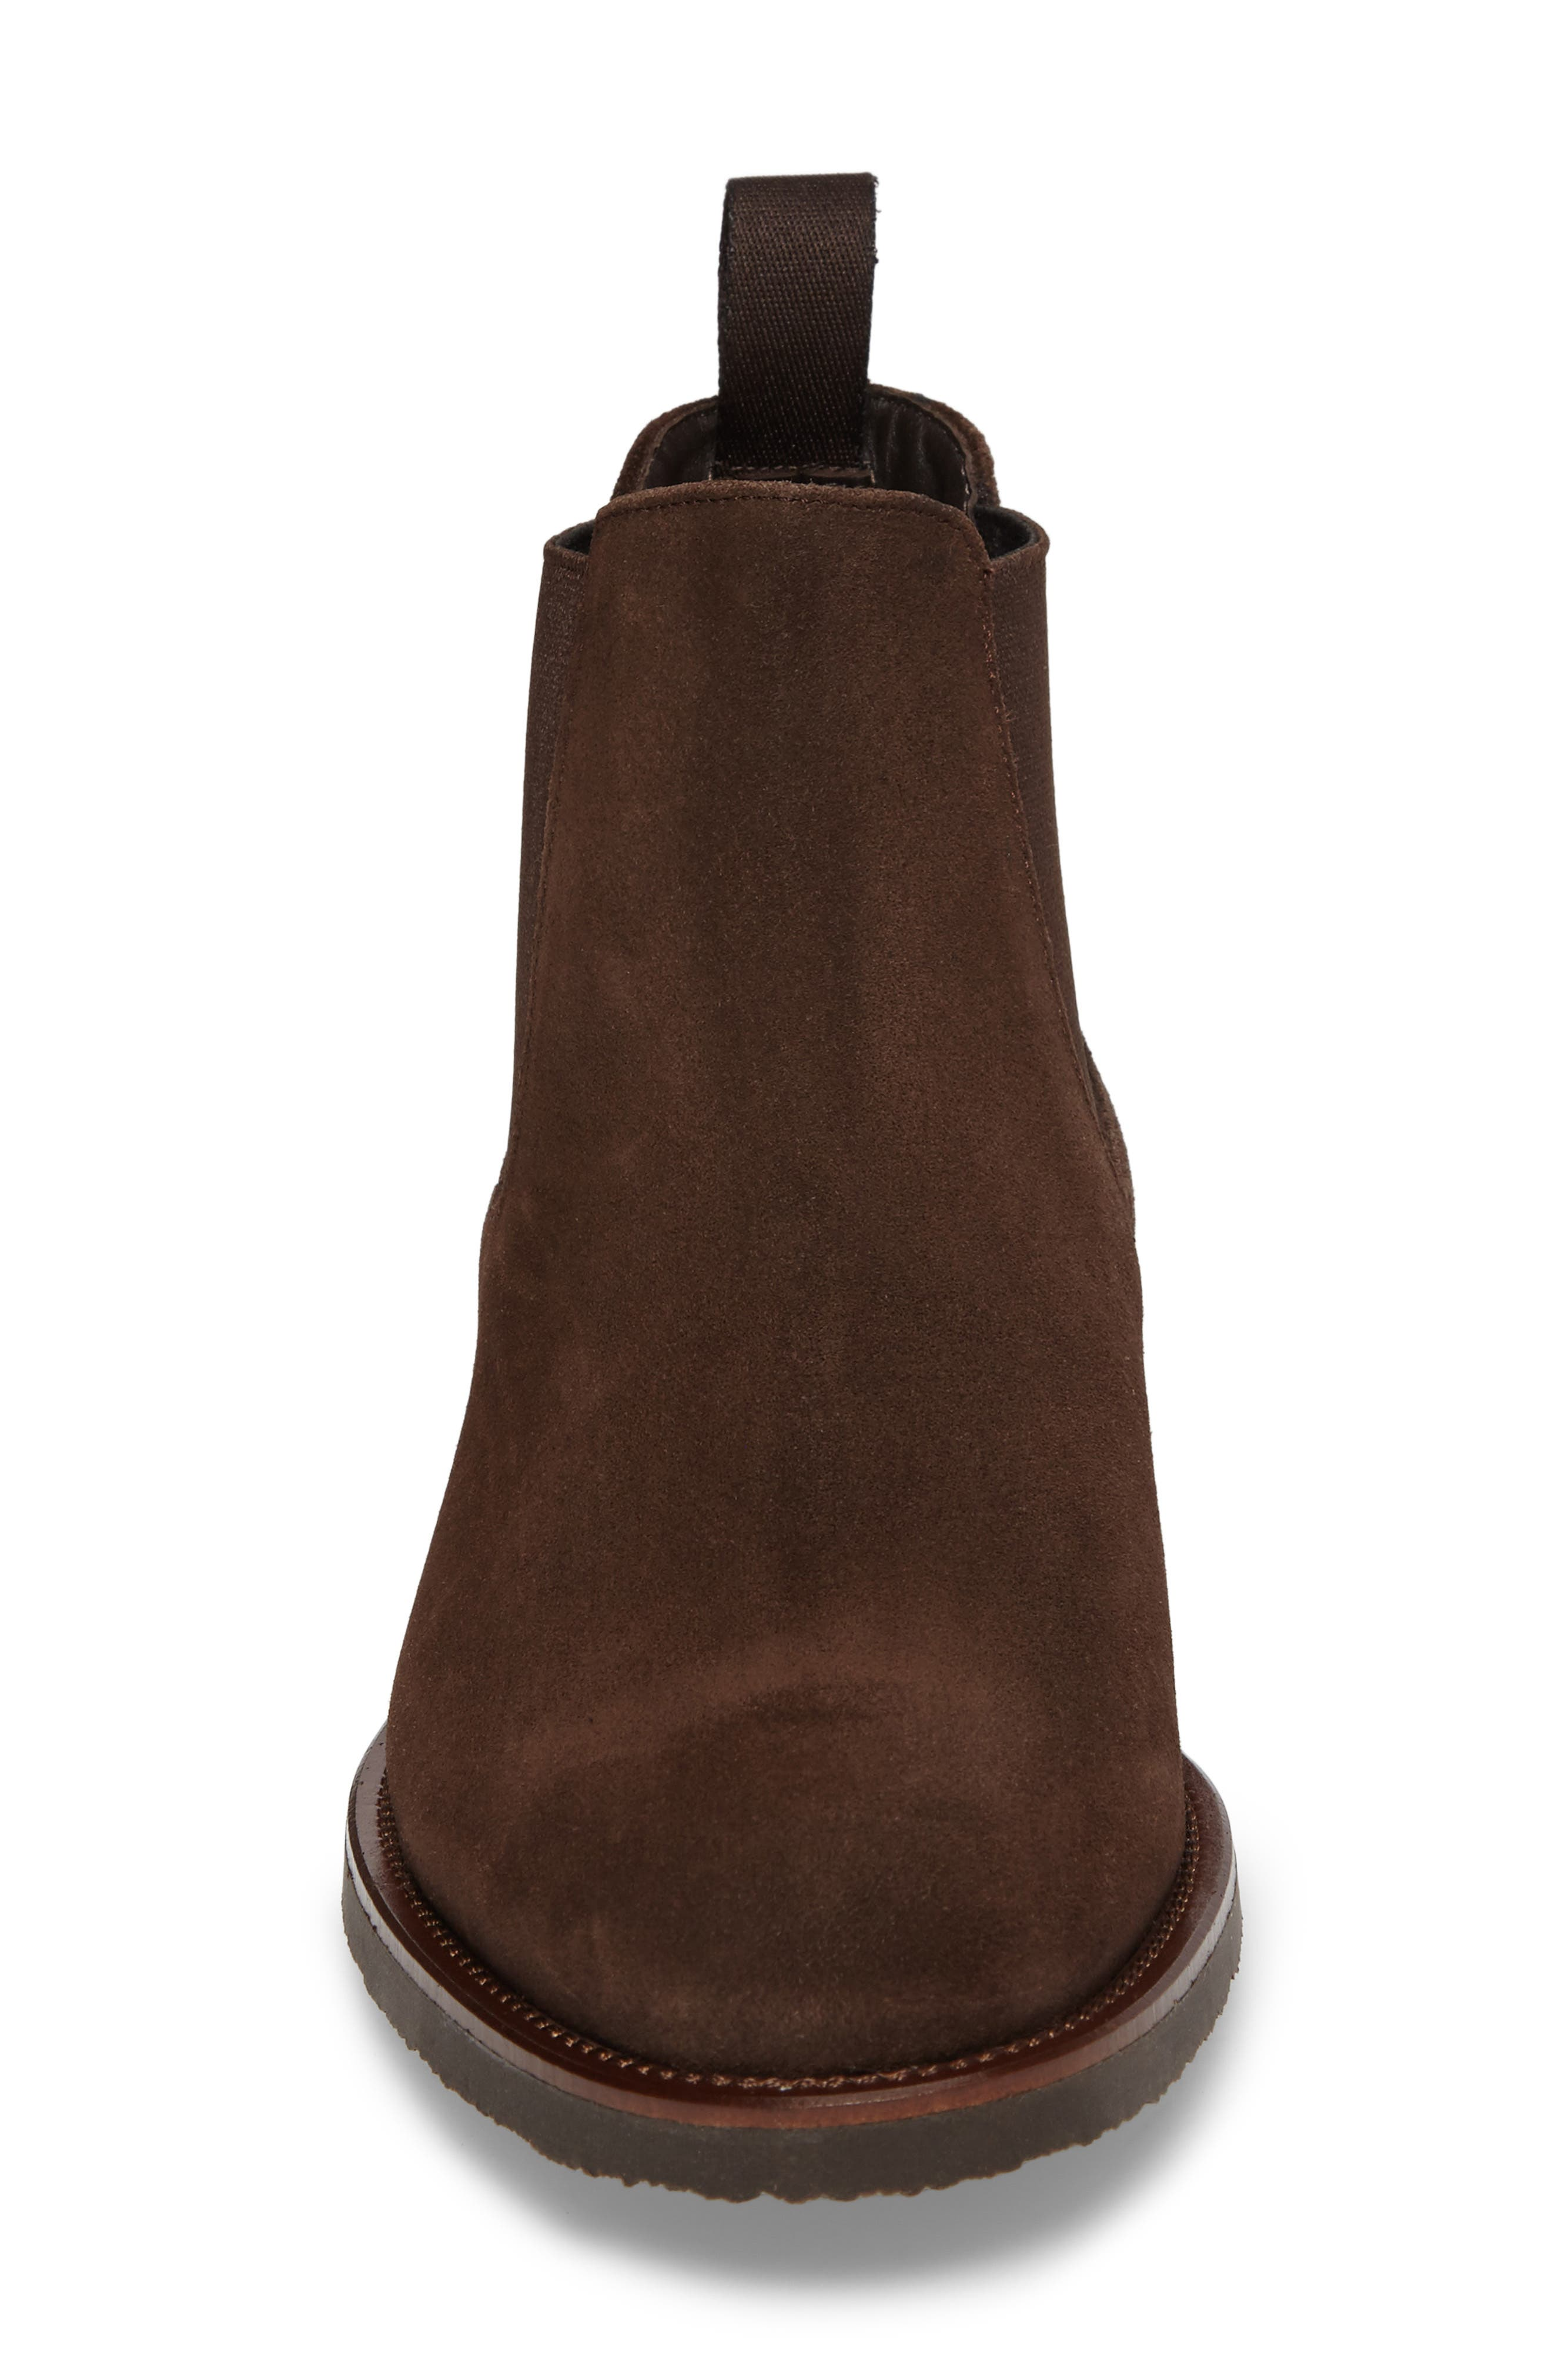 Corden Chelsea Boot,                             Alternate thumbnail 4, color,                             Otterproof Moro